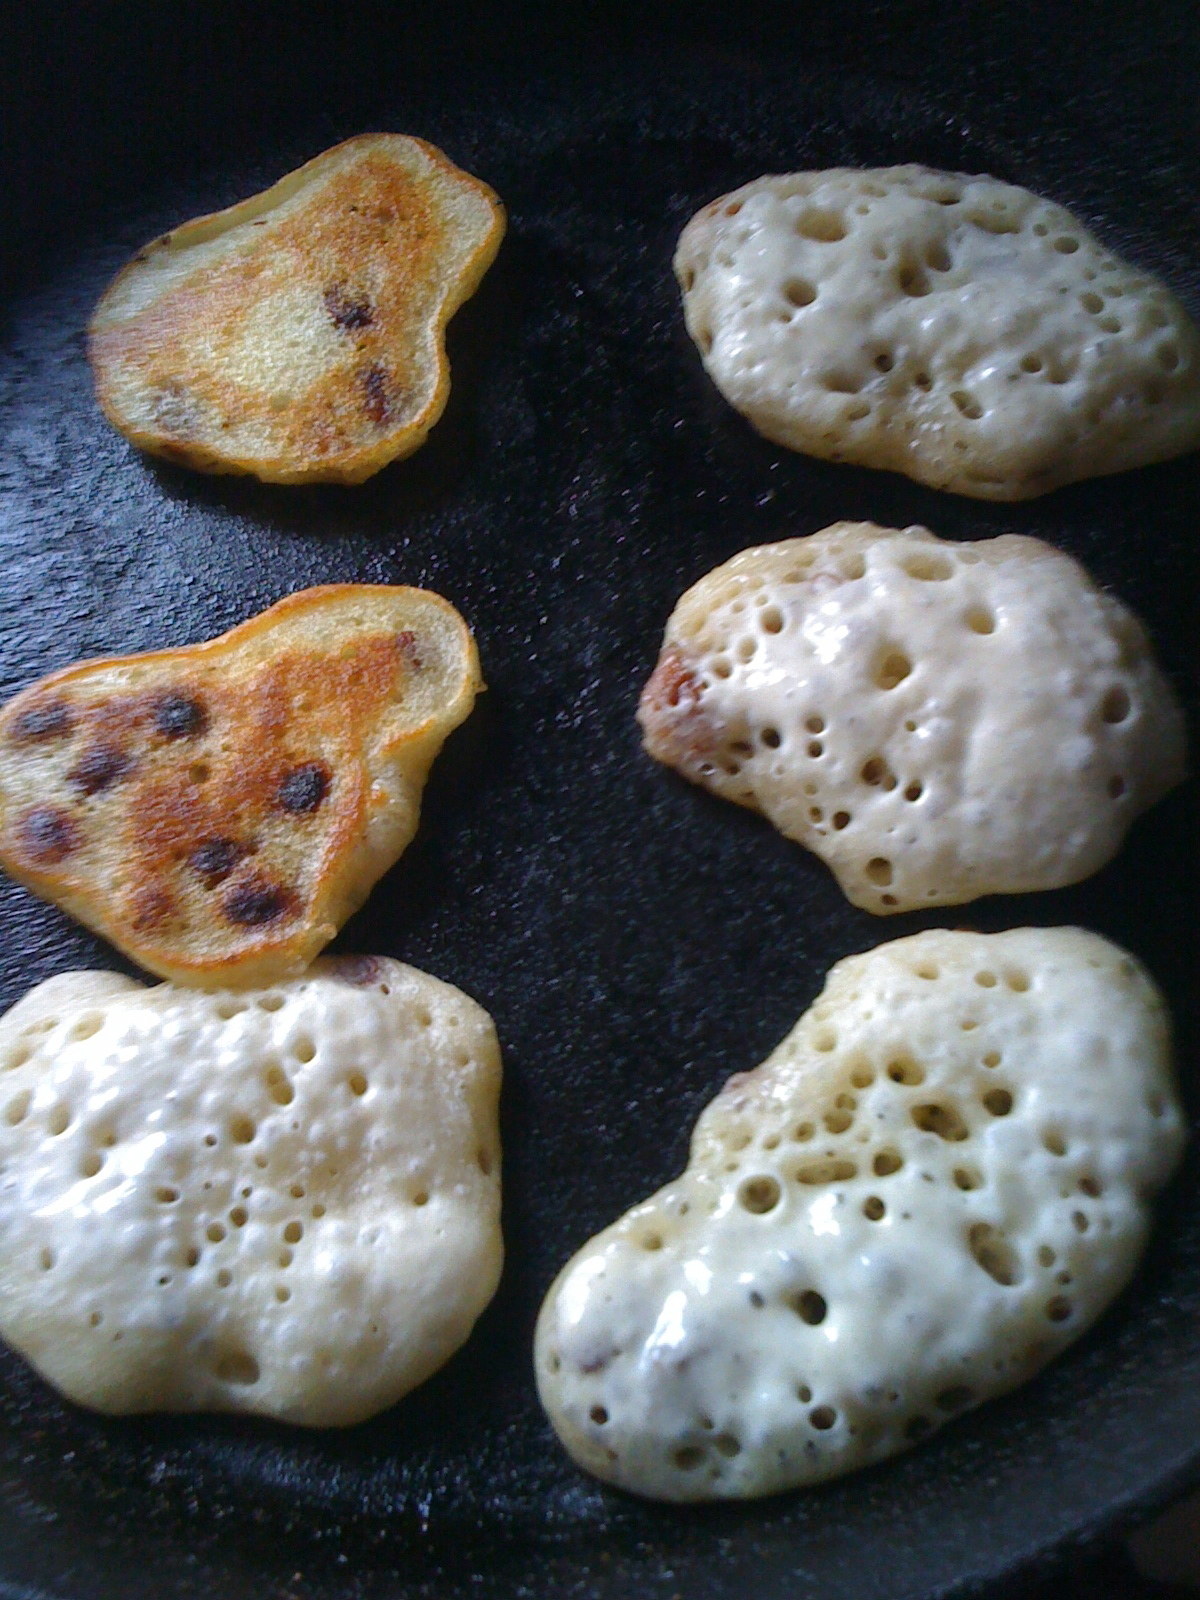 PIKELETS (FREEFORM CRUMPETS)